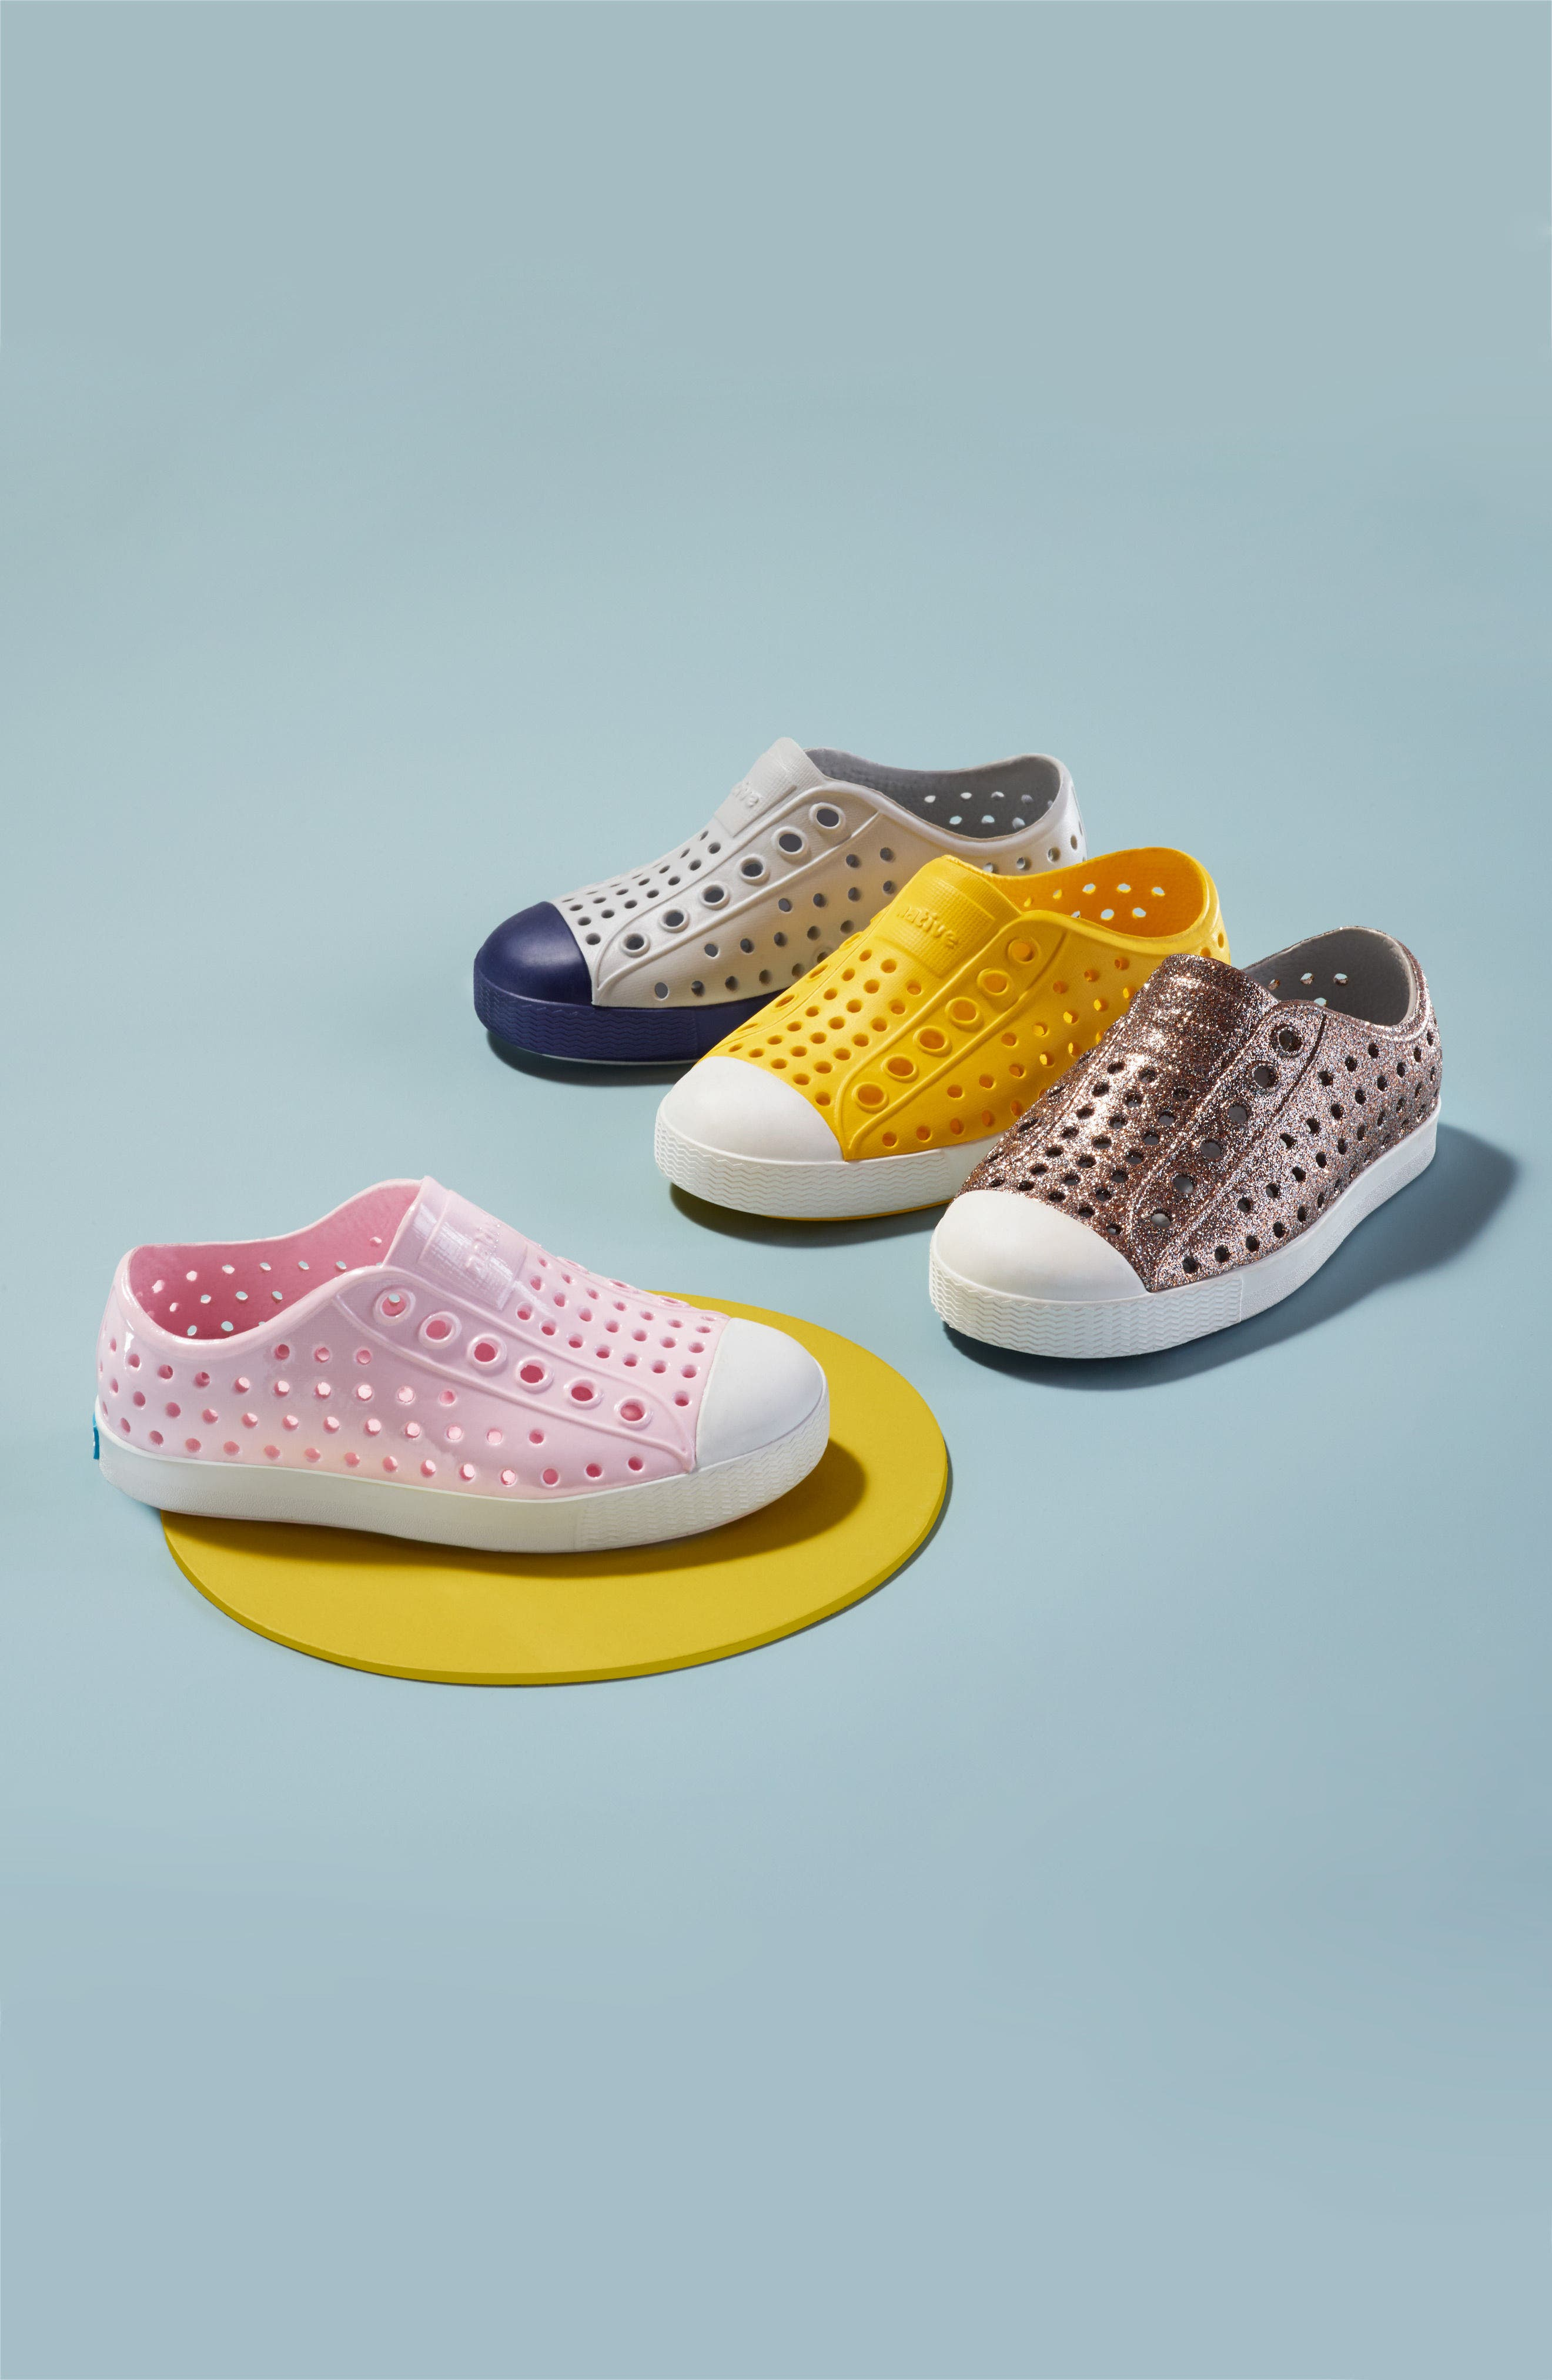 Jefferson - Bling Glitter Slip-On Sneaker,                             Alternate thumbnail 7, color,                             STARFISH BLING/ SHELL WHITE